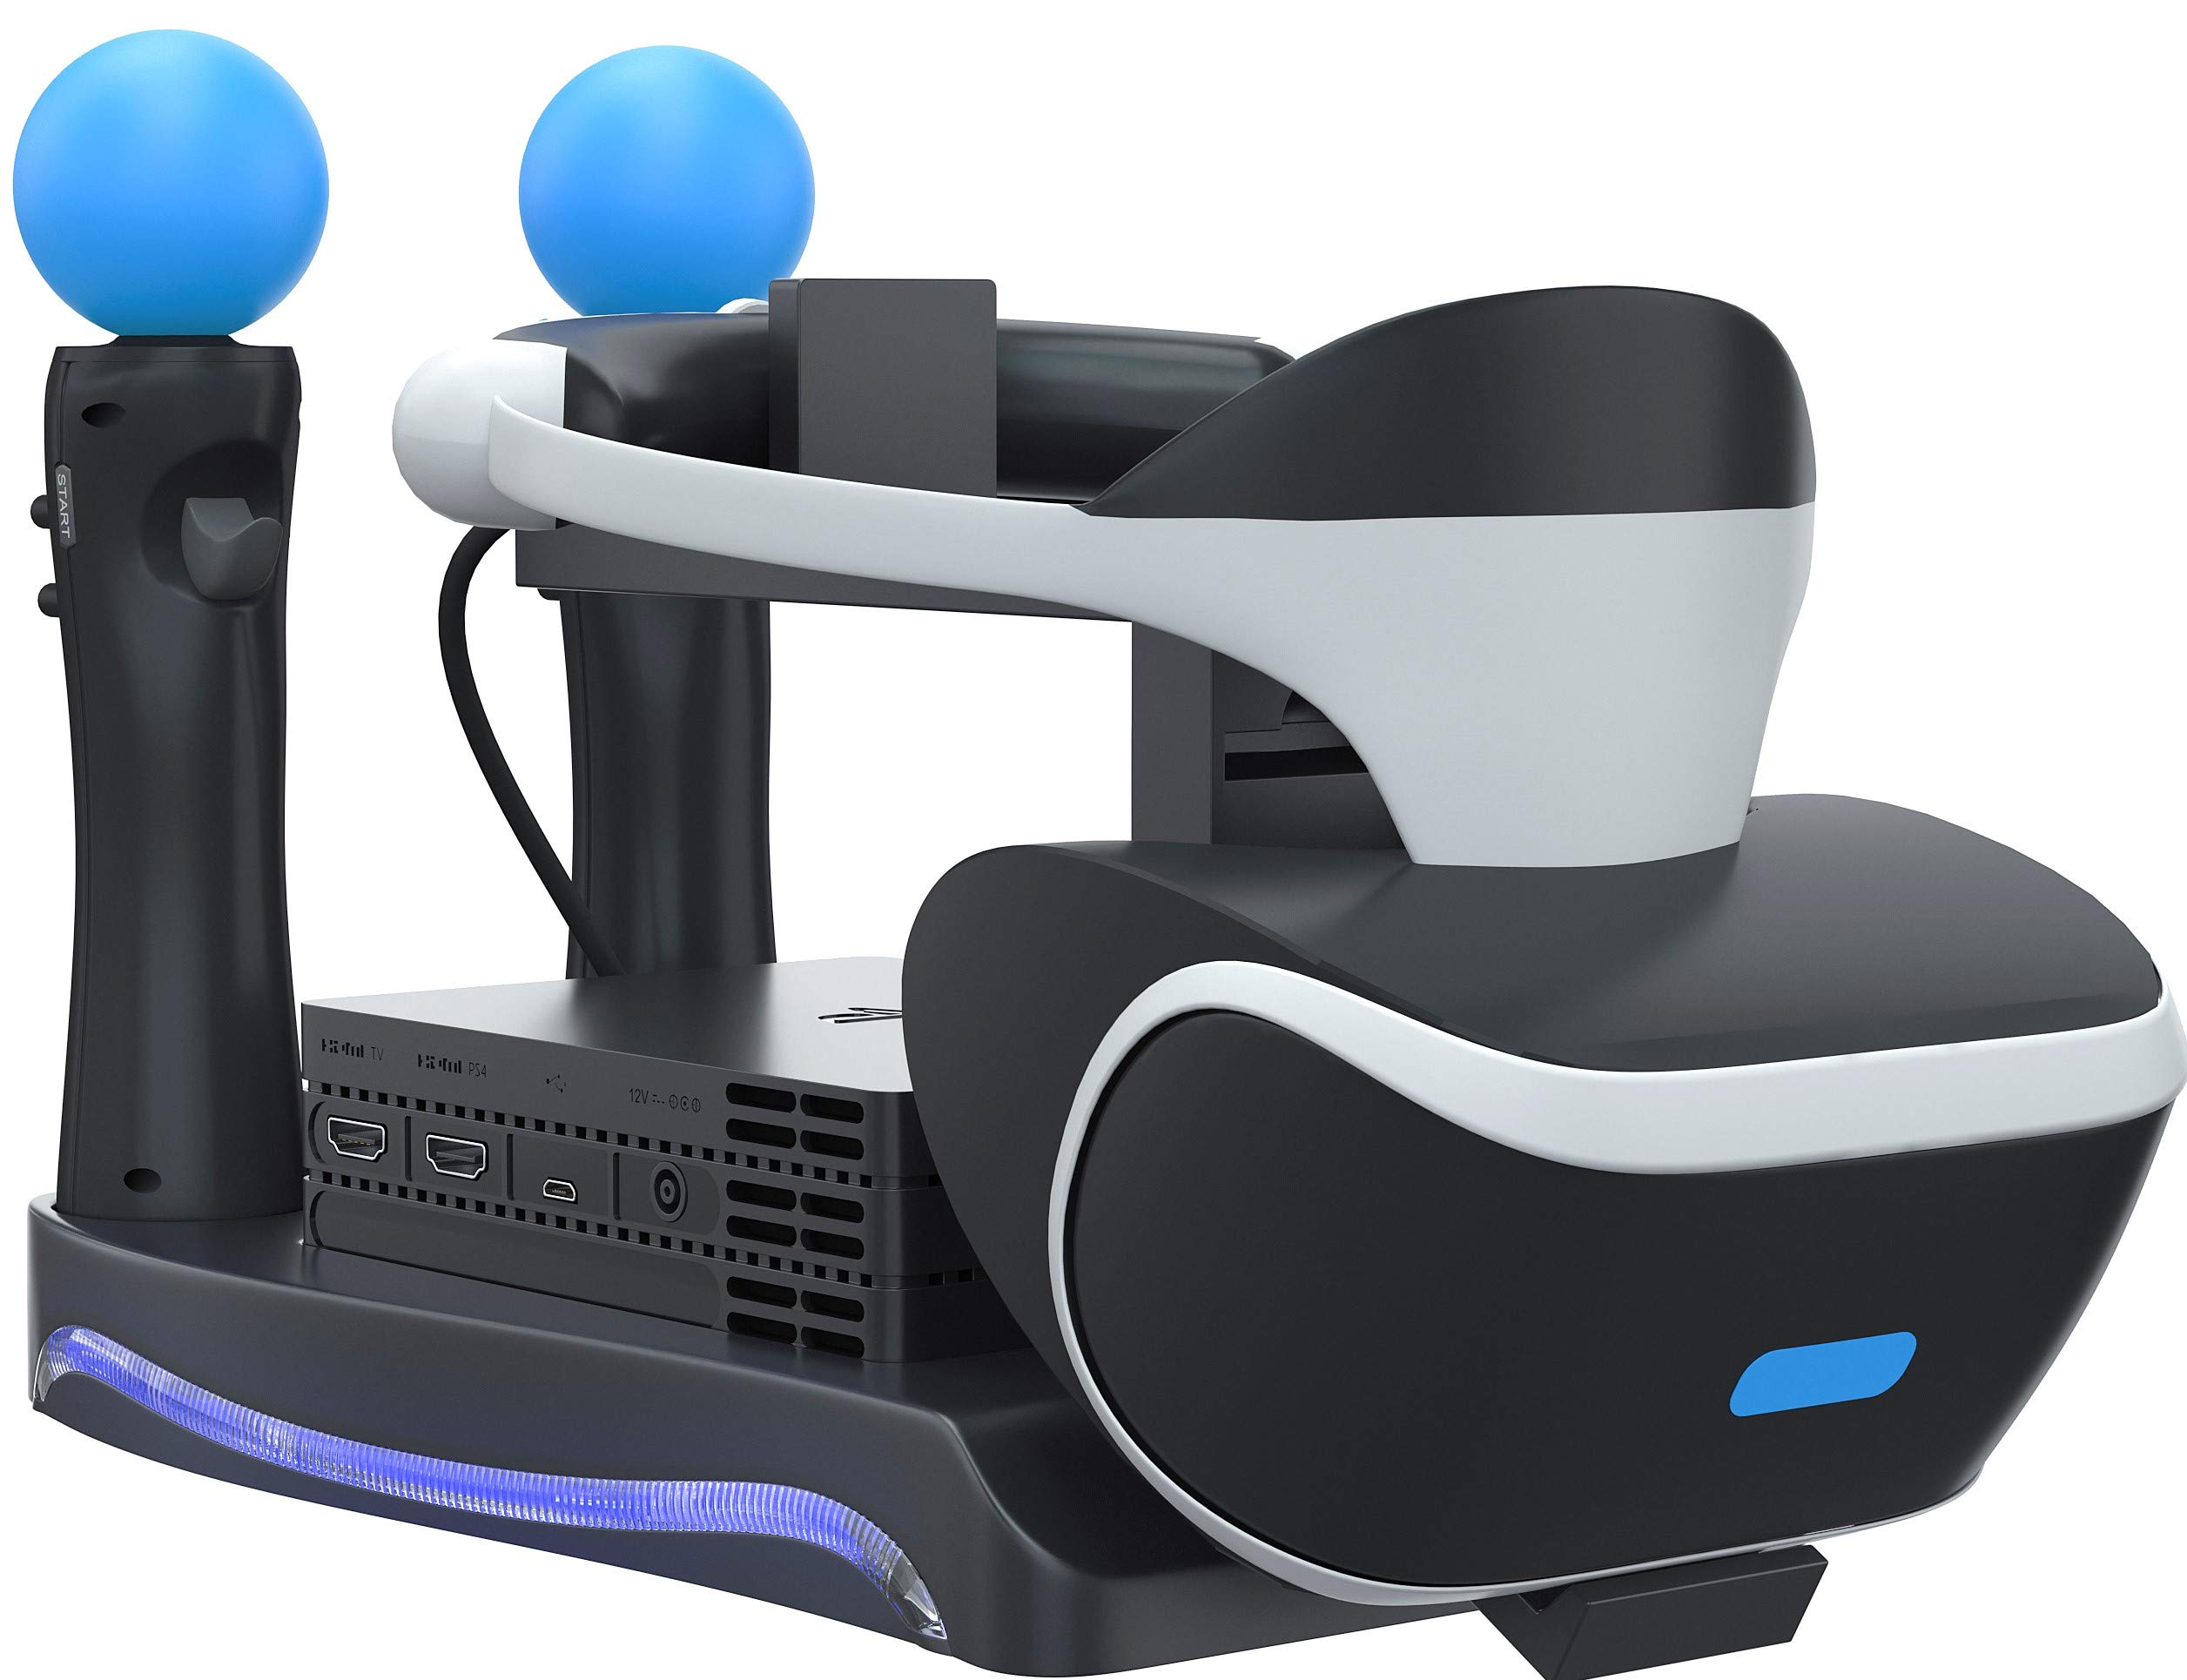 Skywin PSVR Stand – Charge, Showcase, and Display Your PS4 VR Headset and Processor – Compatible with Playstation 4 PSVR…